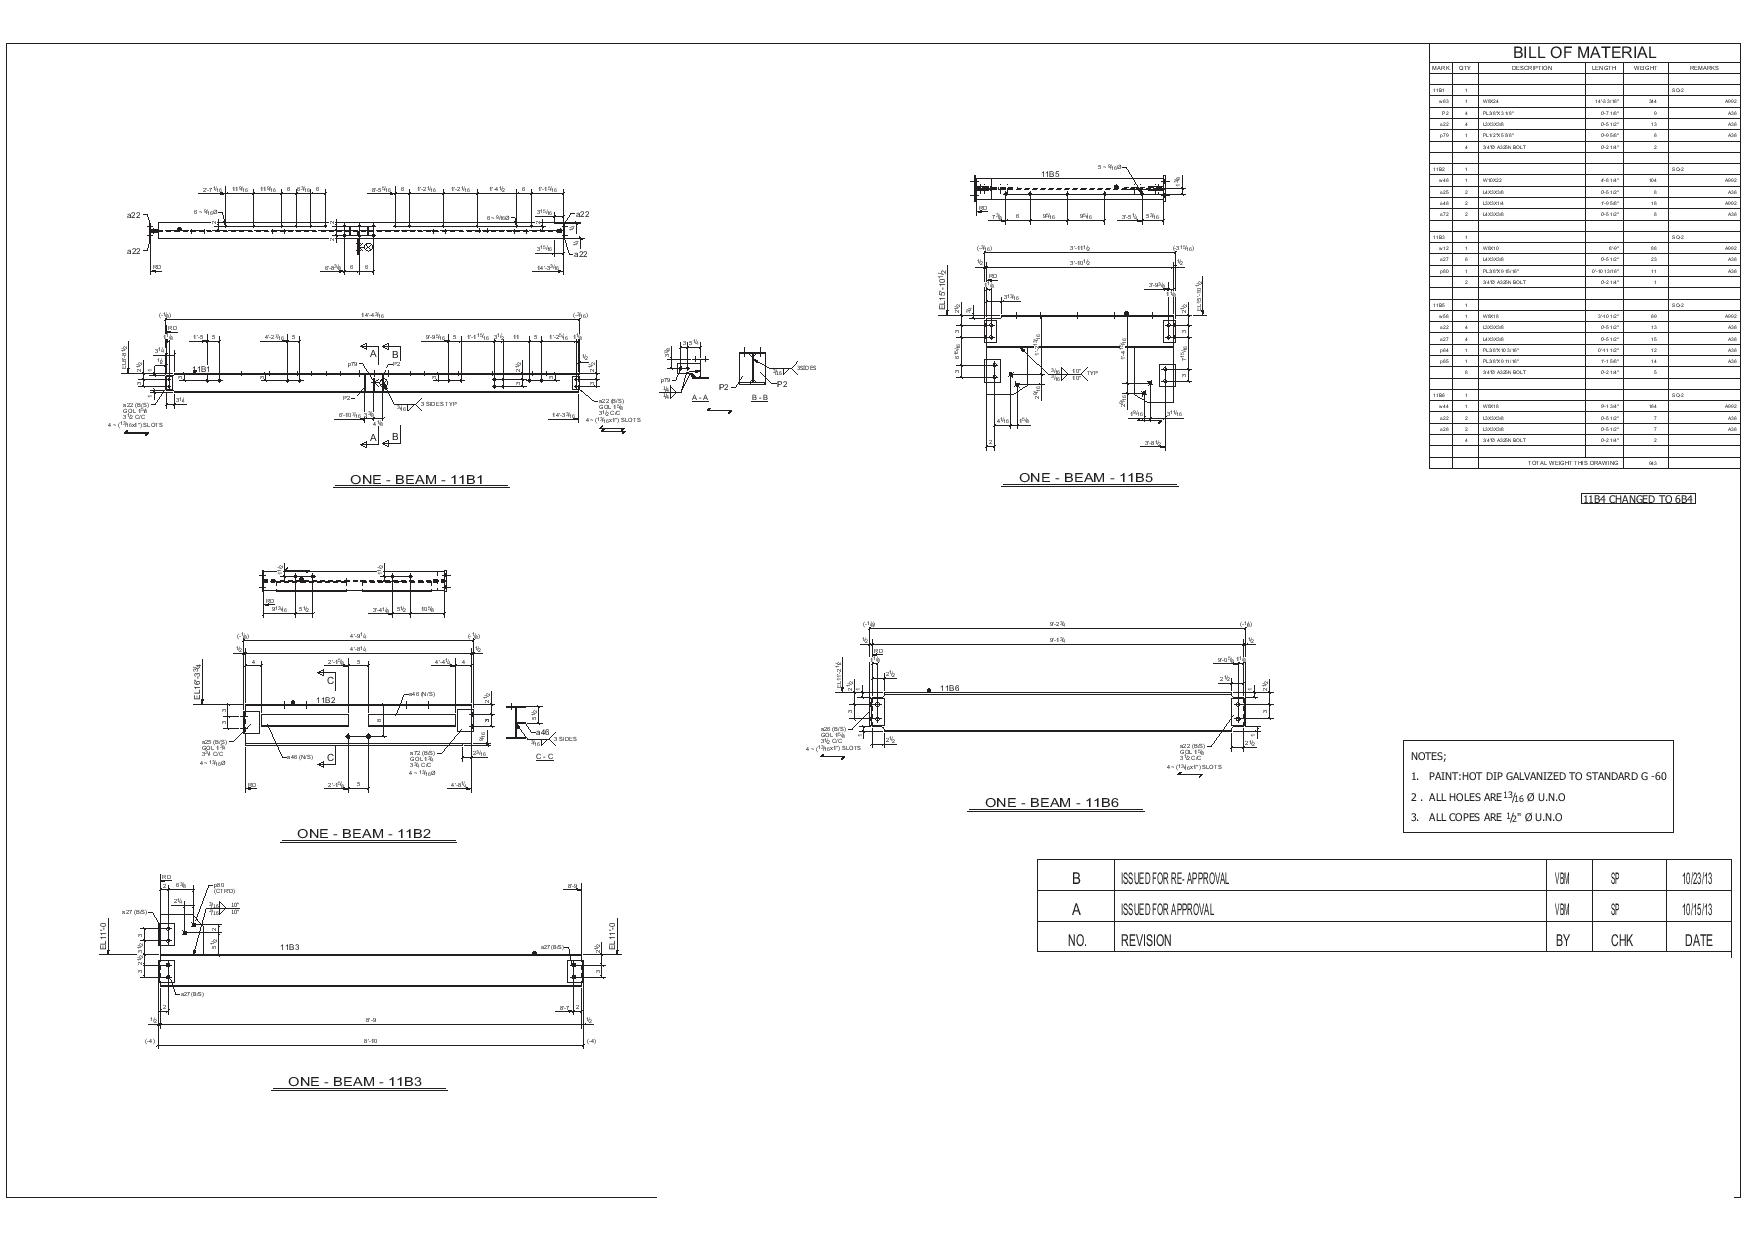 picture royalty free library Sample Drawing for Construction and Structural Steel Industry